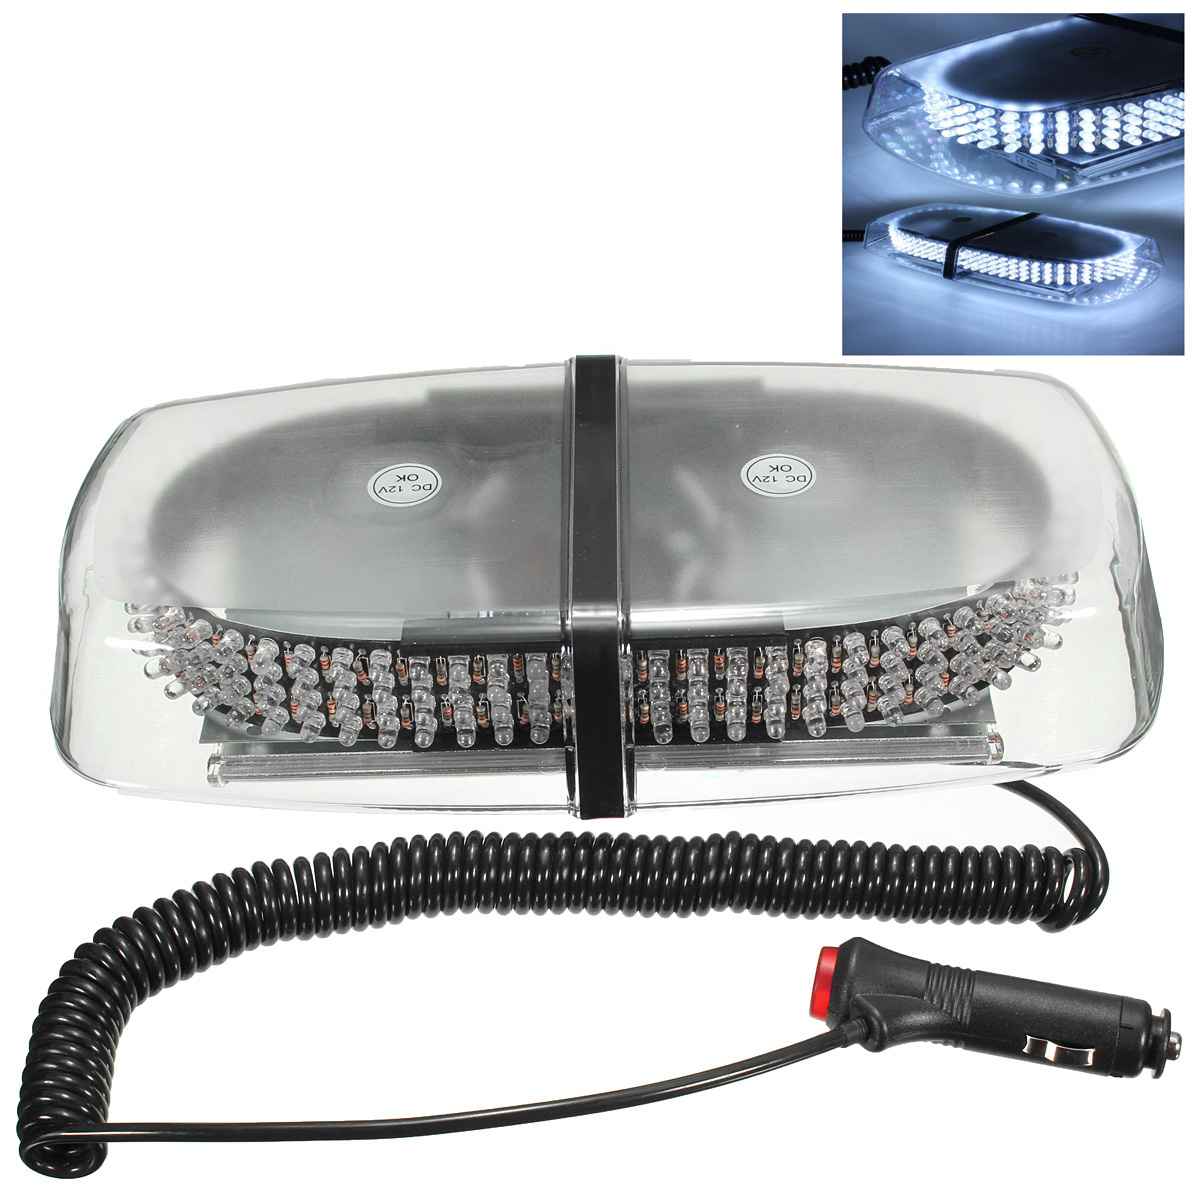 12V-240-LED-luz-estroboscopica-magnetica-de-advertencia-de-emergencia-luz-de-fla